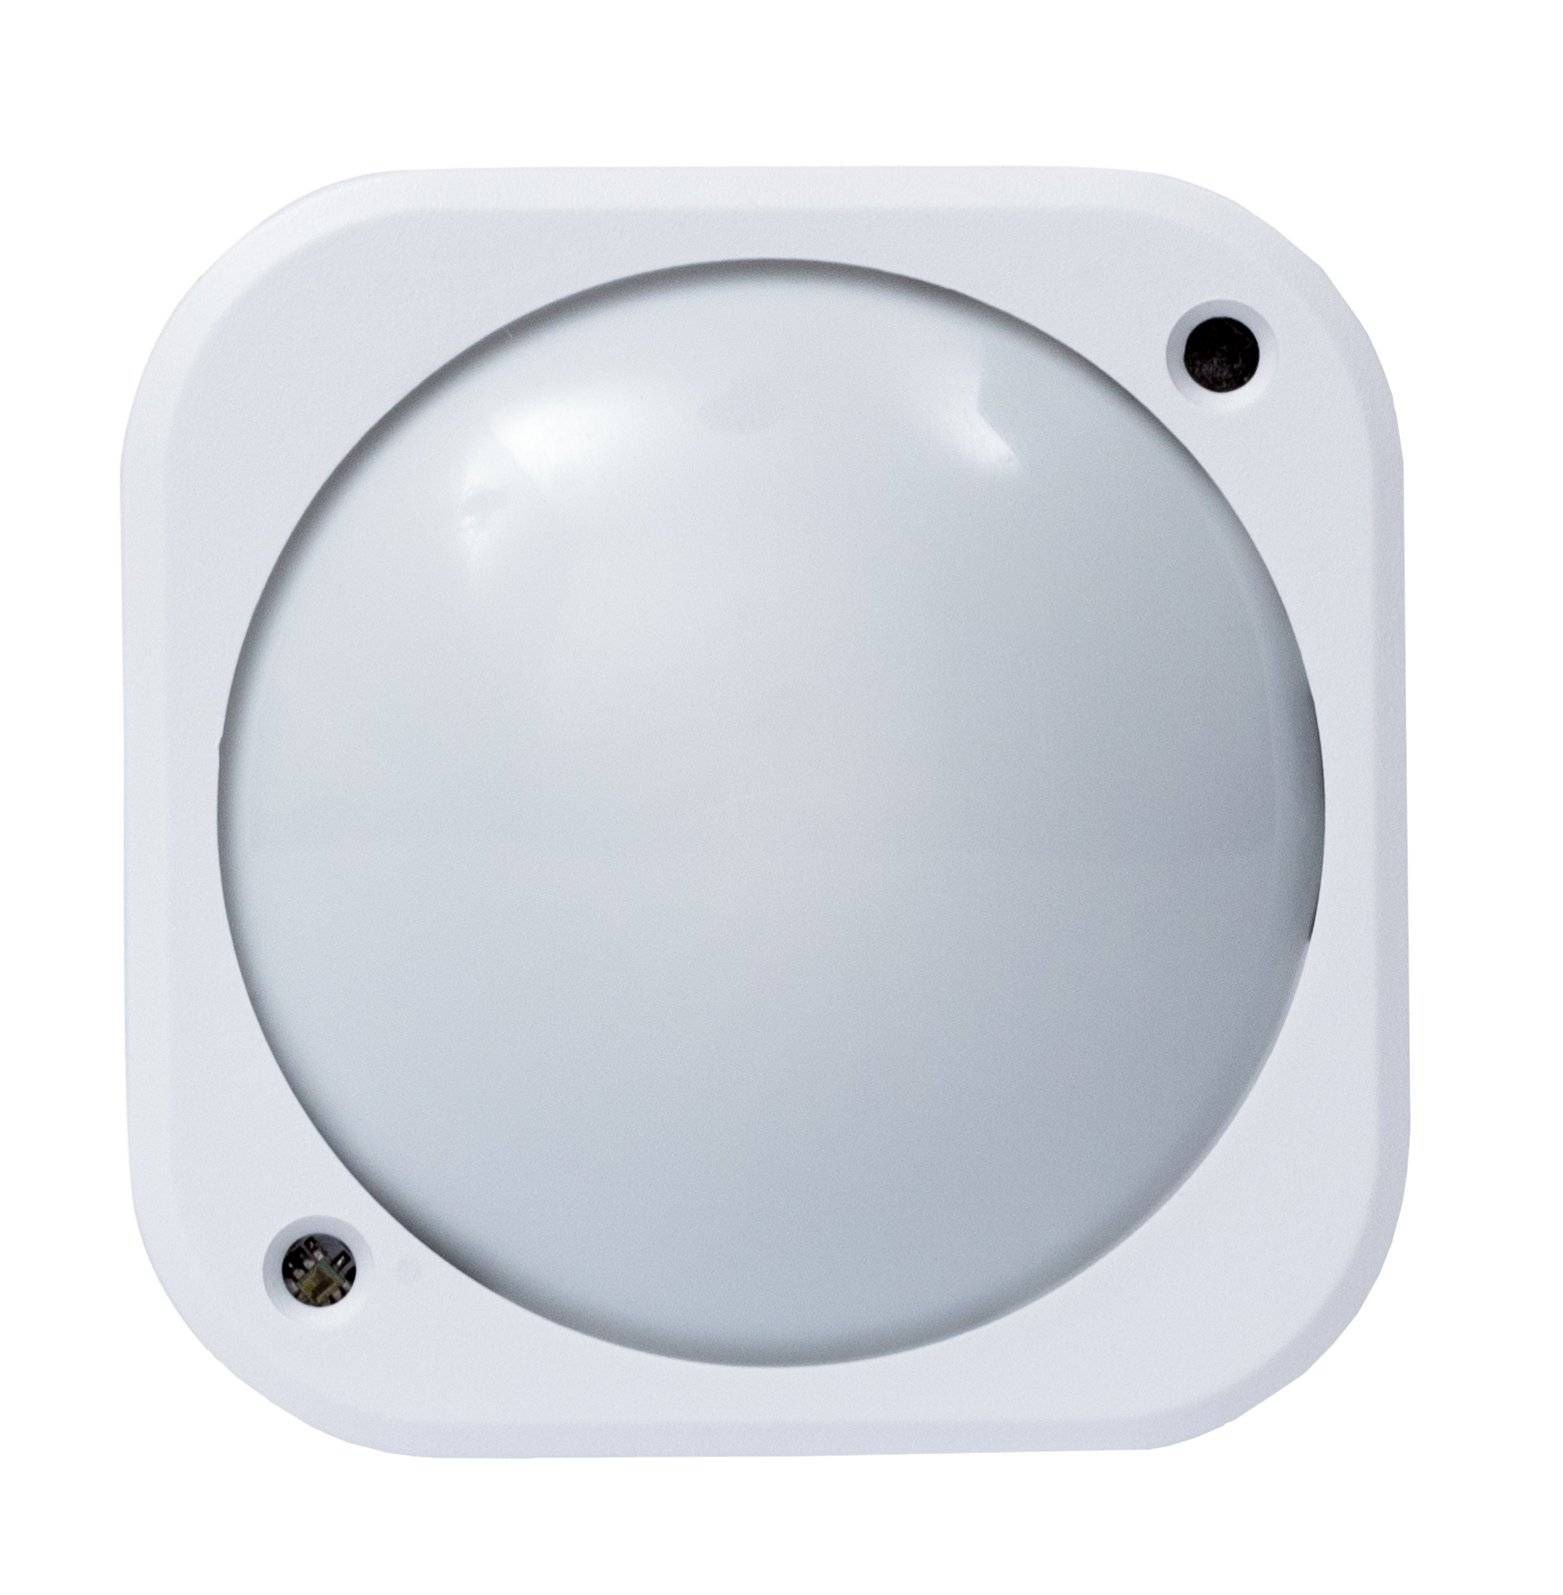 Oomi MultiSensor - Six Z-Wave Sensors in One - Motion, Temperature, Humidity, Light, UV Light, and Vibration. Secure, Automate, and Monitor Your Home by Oomi (Image #3)